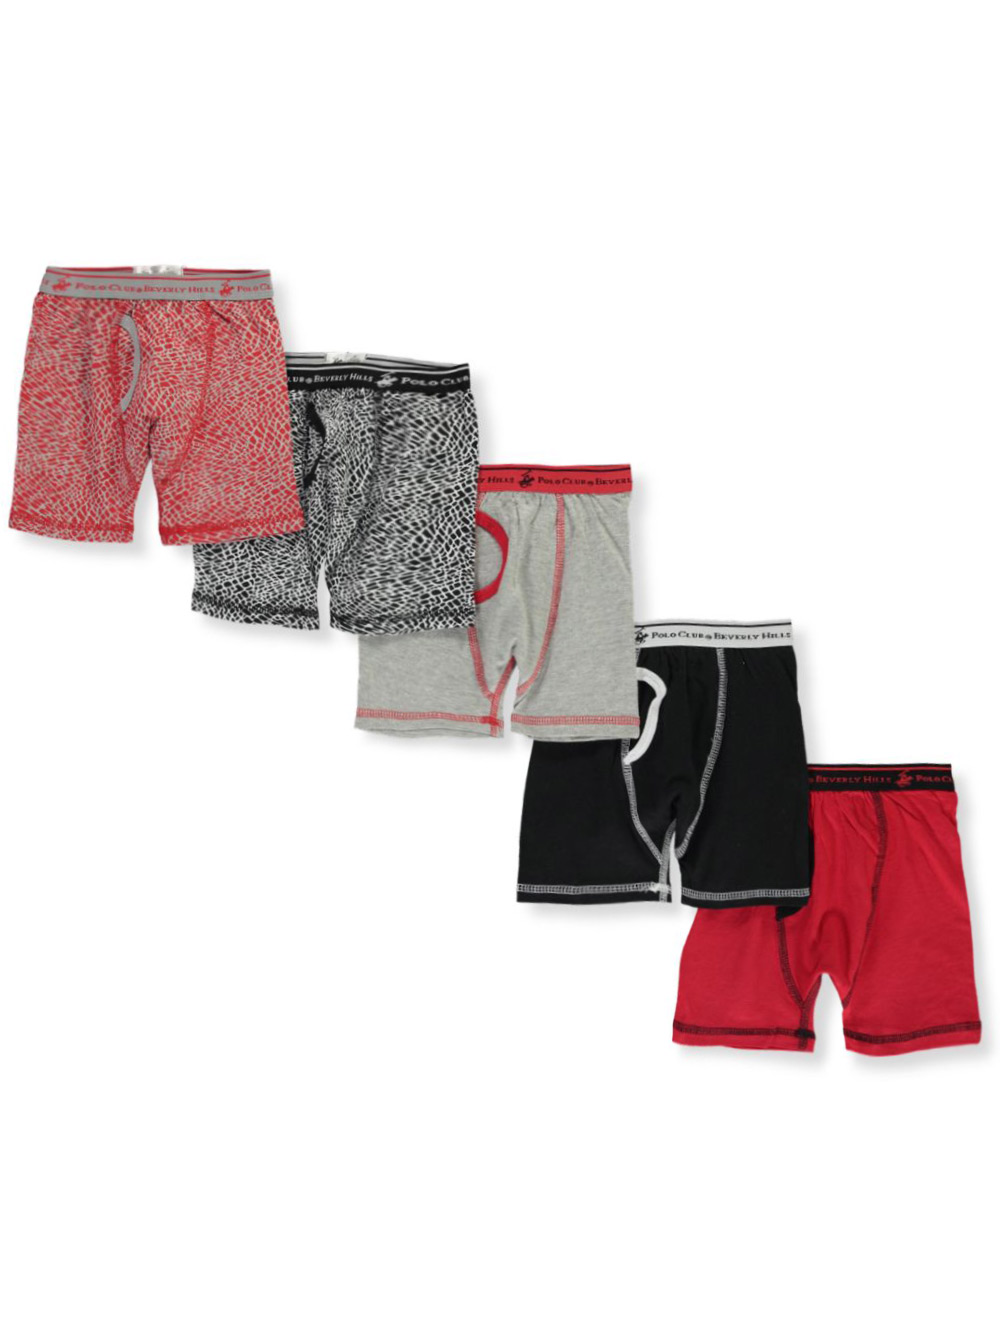 Boys' 5-Pack Boxer Briefs